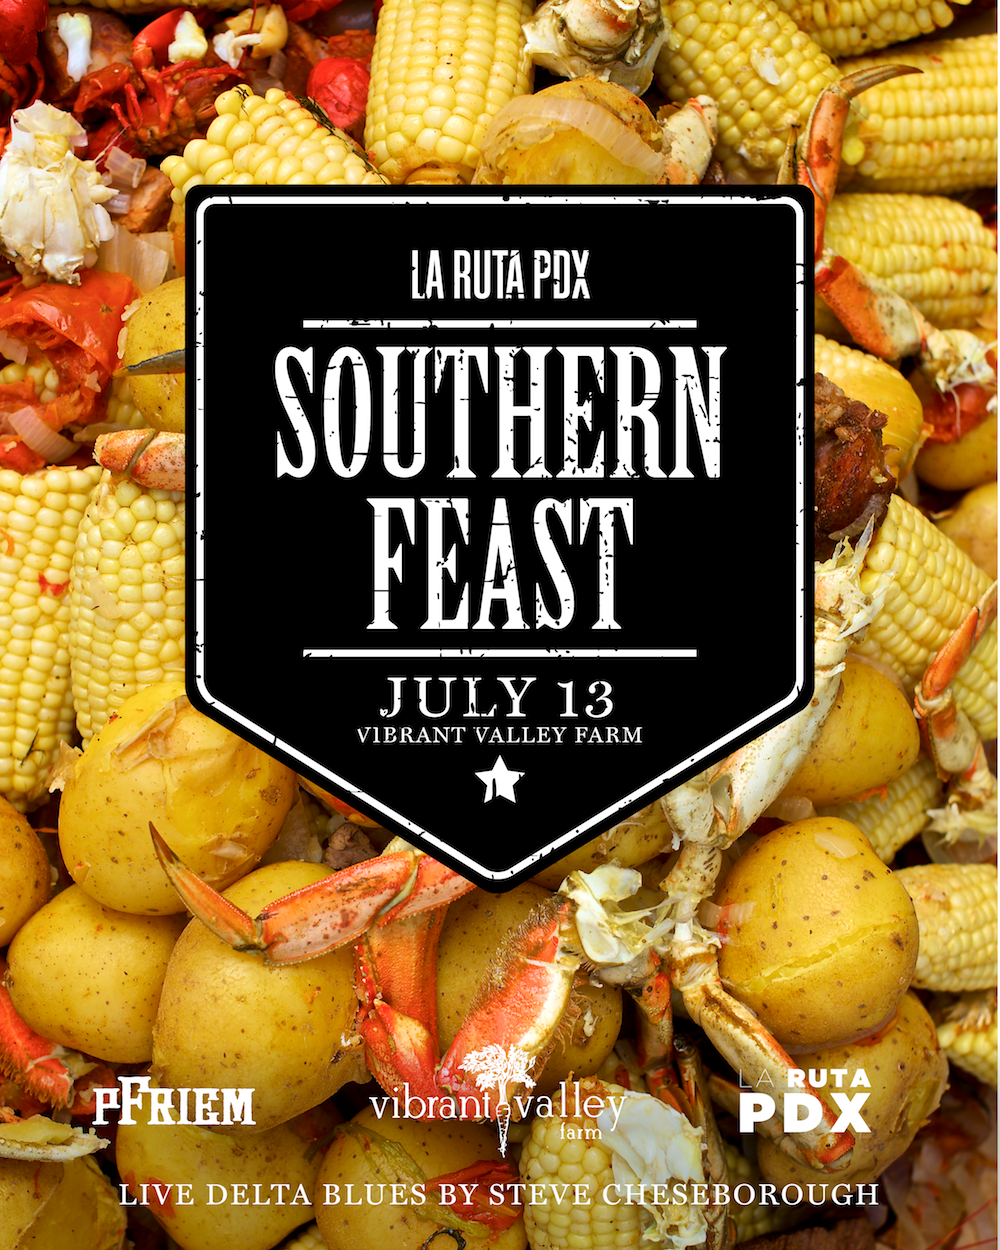 Southern Feast